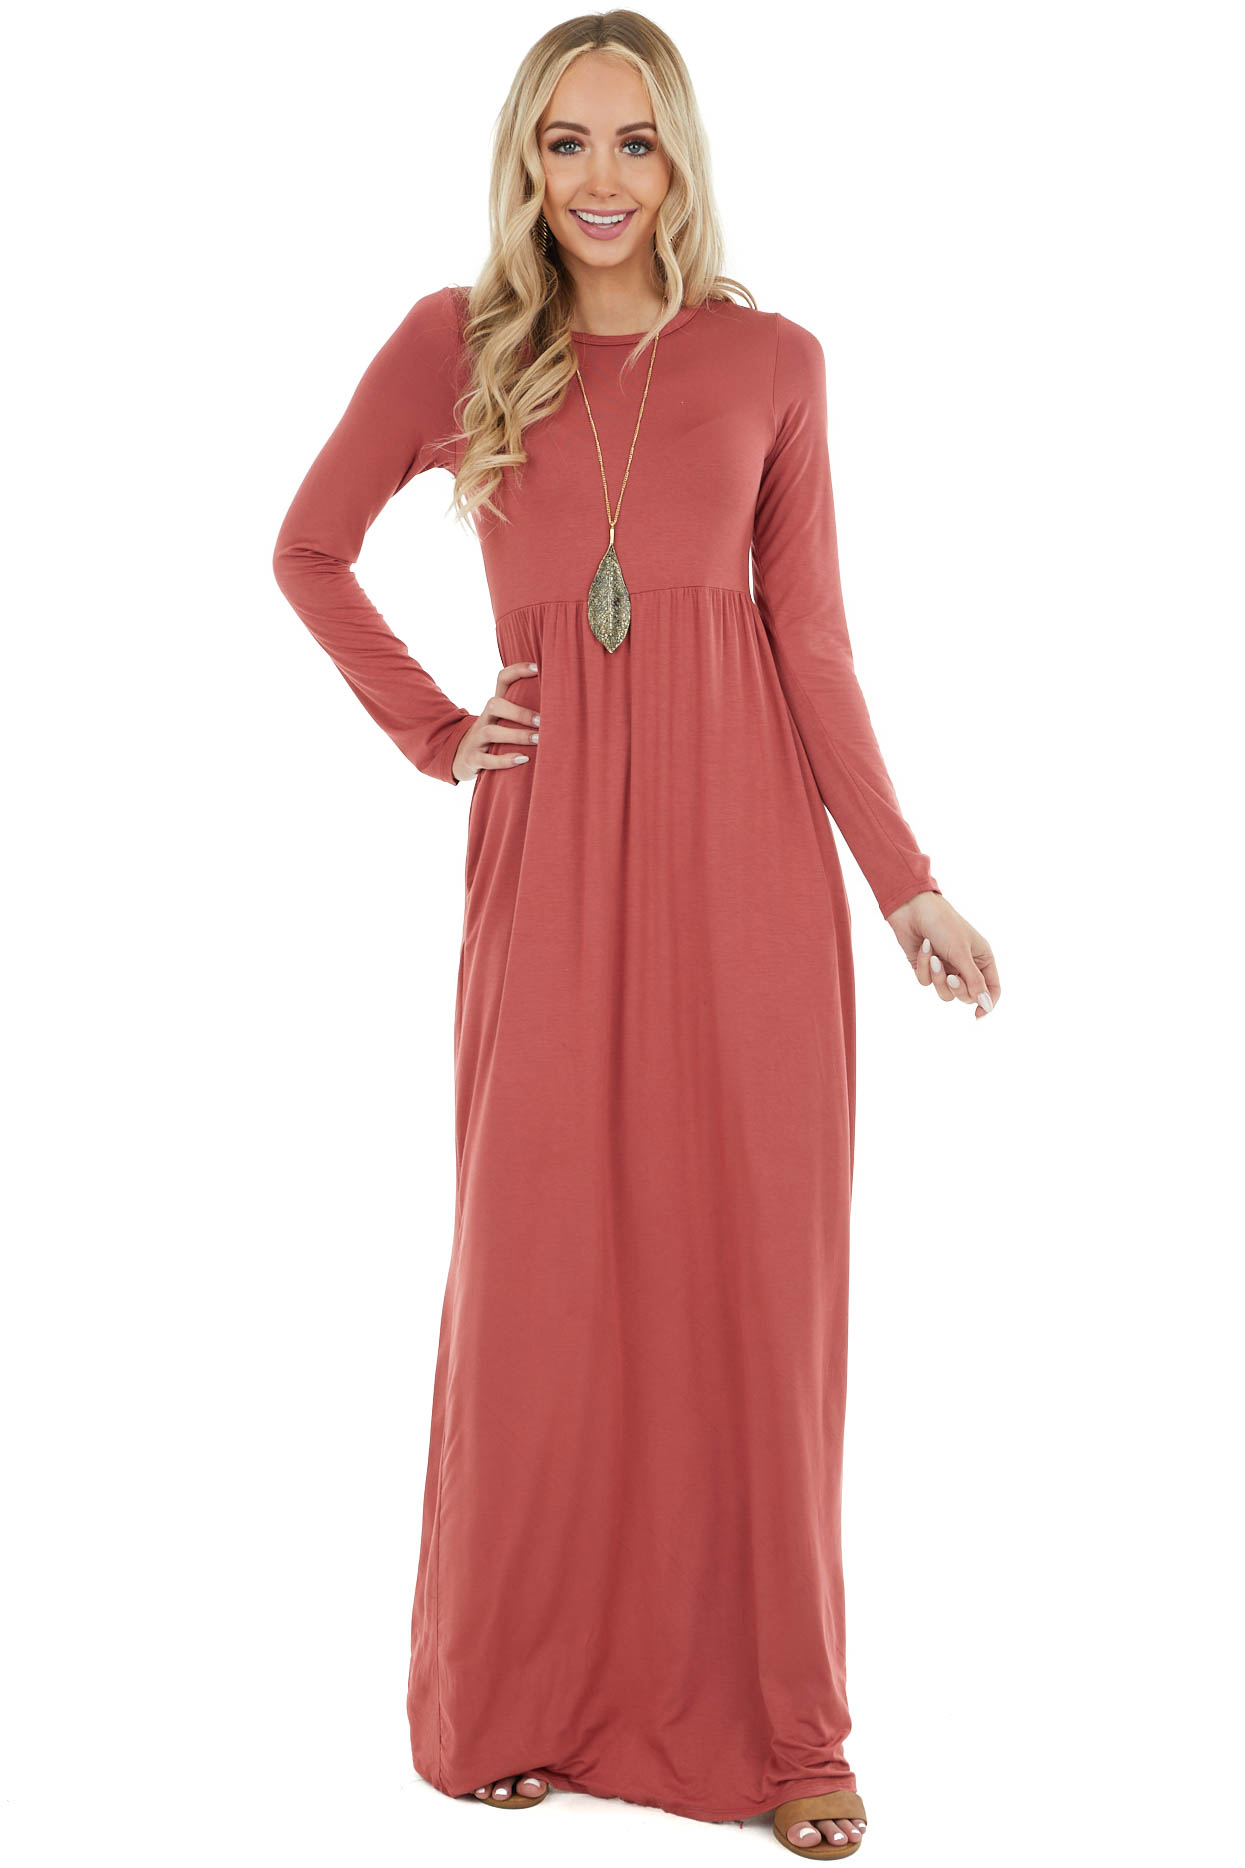 Marsala Long Sleeve Knit Maxi Dress with Pockets